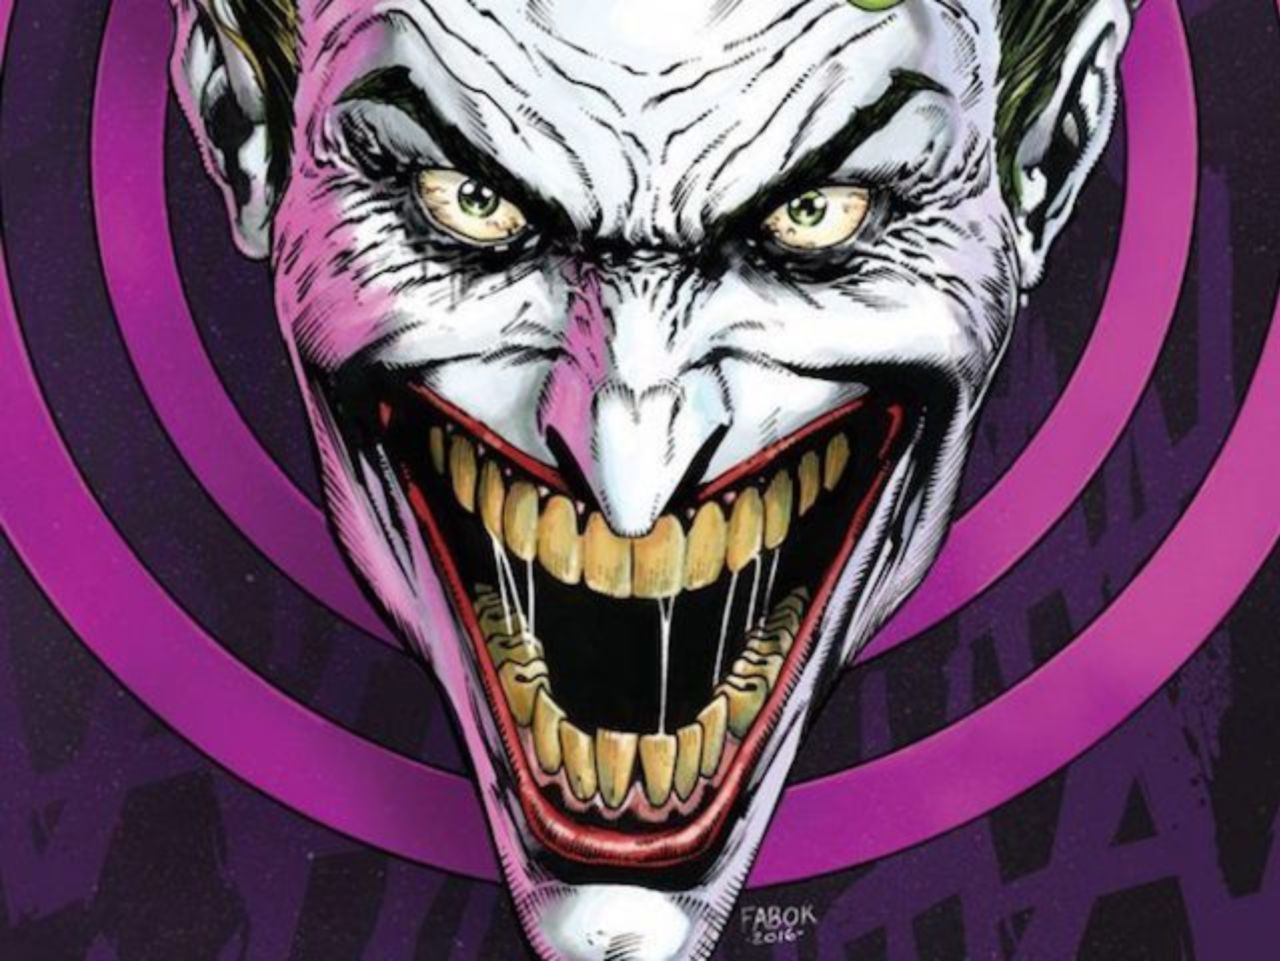 Dc Comics And Geoff Johns To Shed Light On The Three Jokers In New